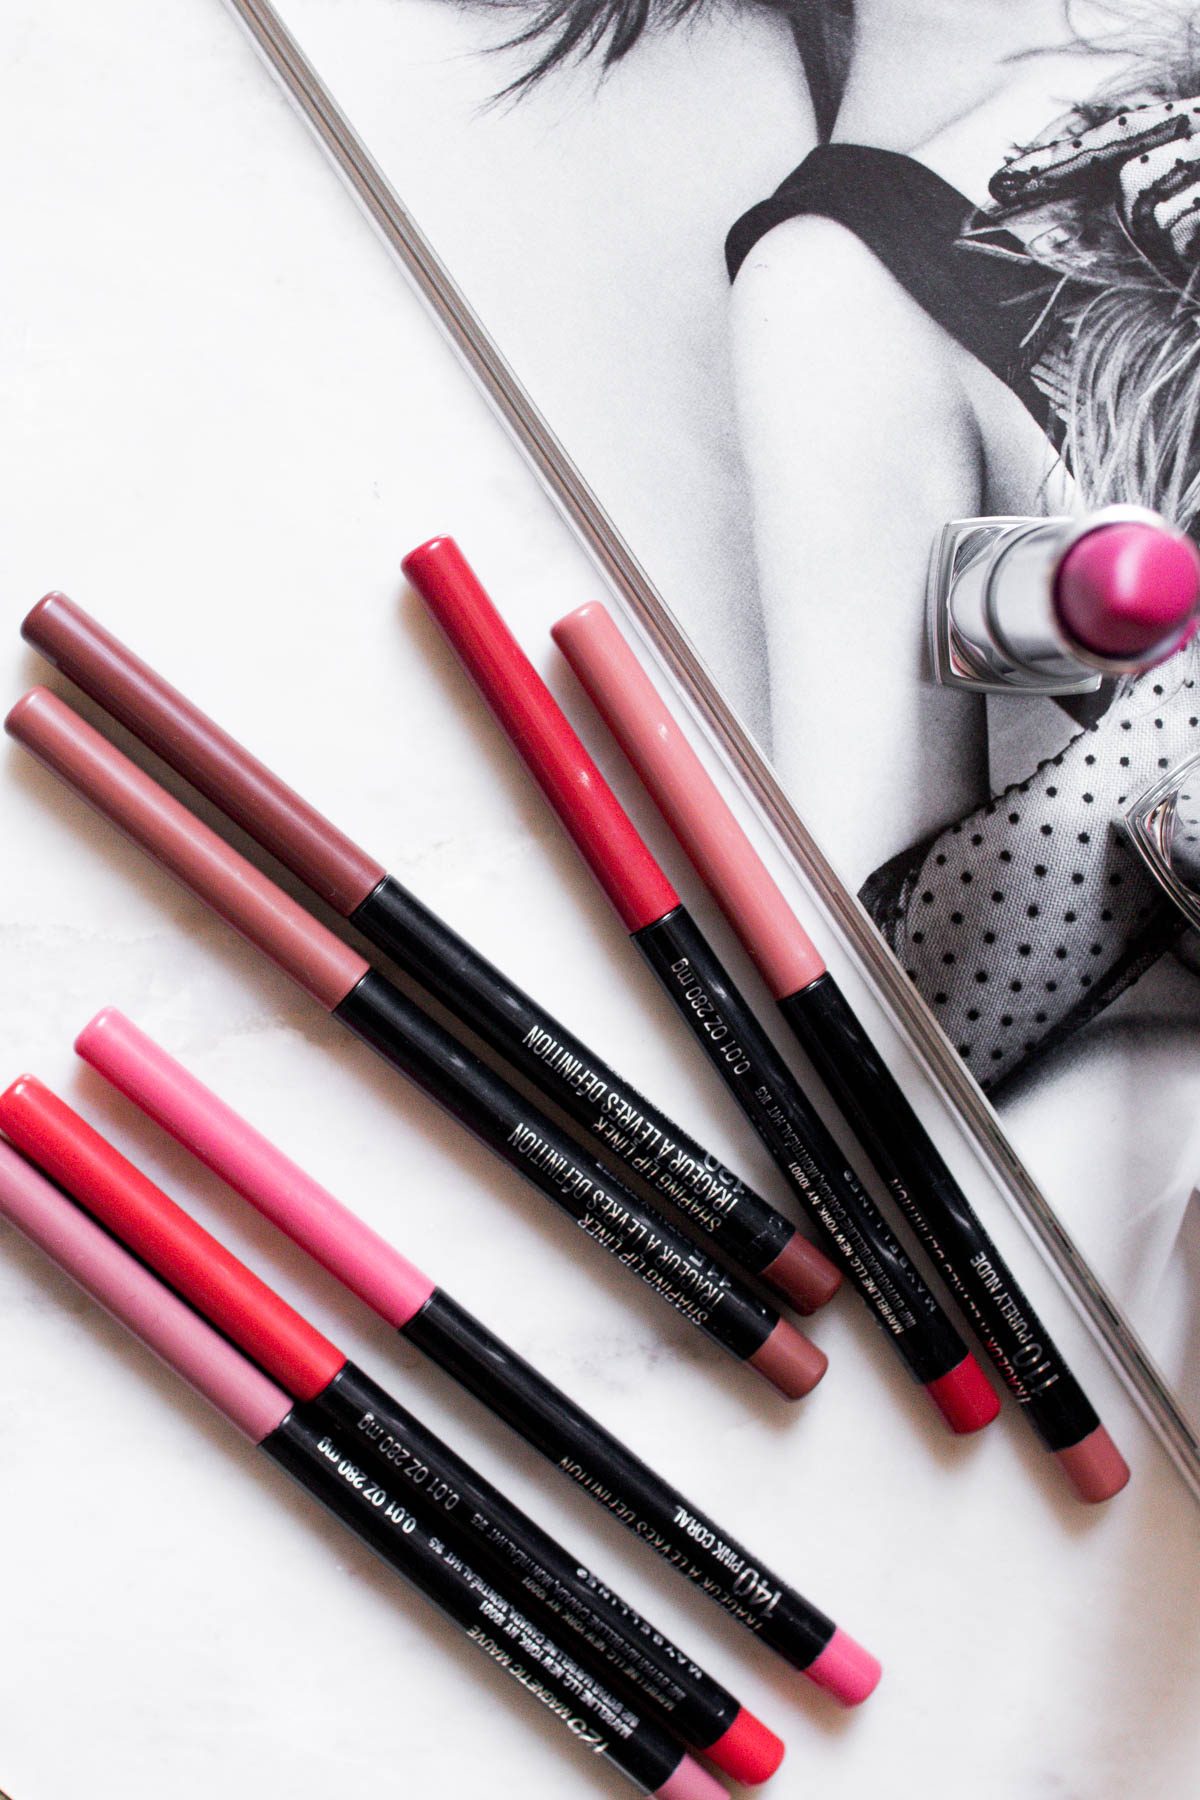 Maybelline Colorsensational Shaping Lip Liner Review | The Beauty Vanity